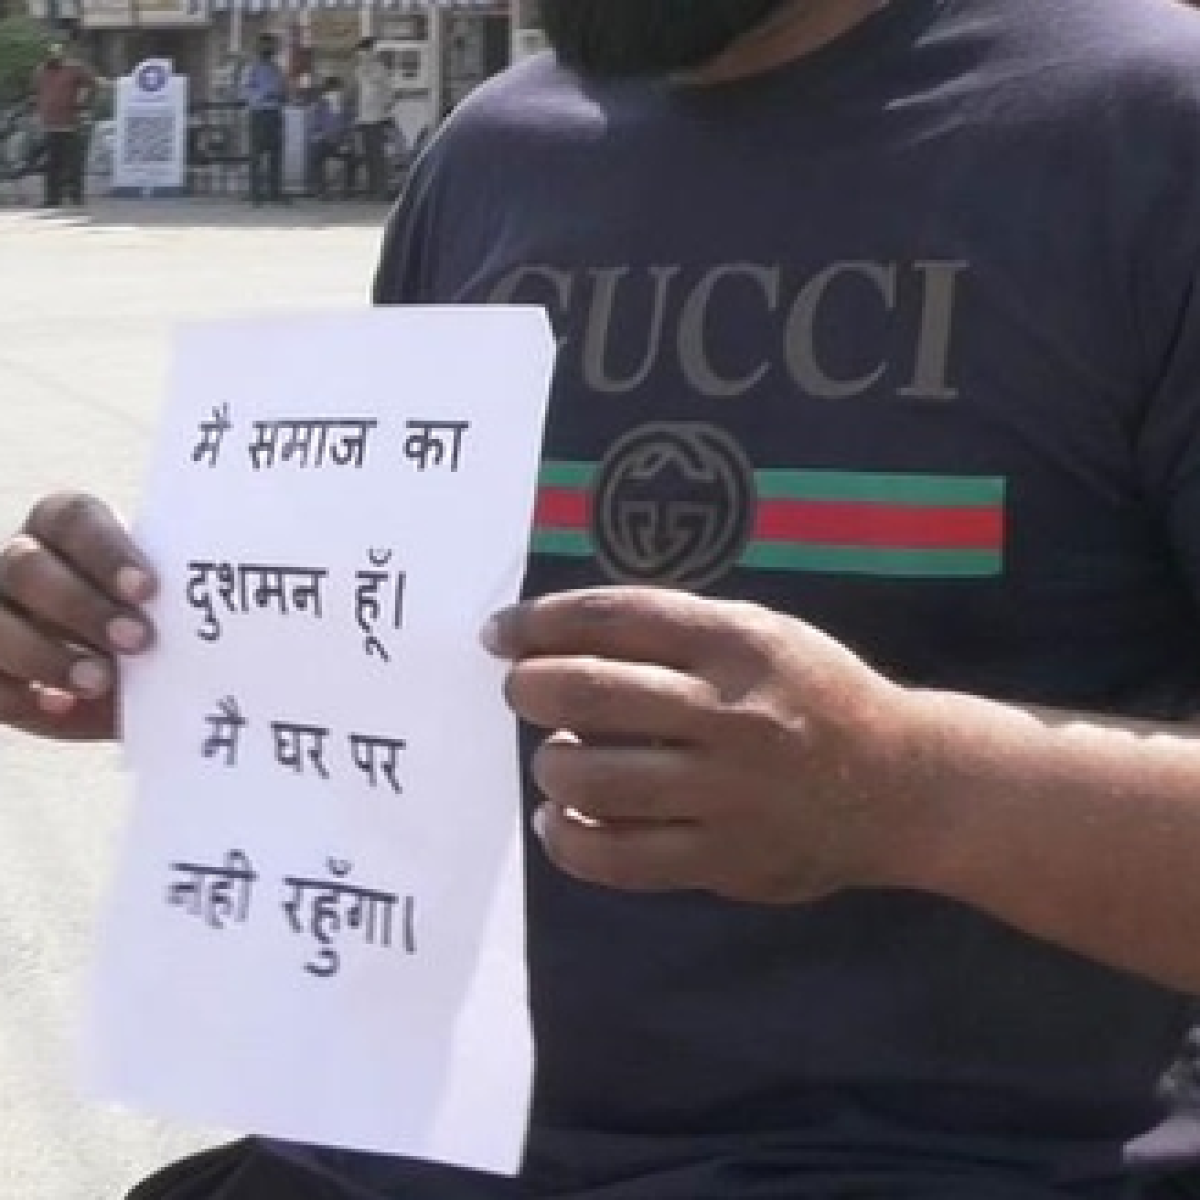 'I am an enemy of society': UP Police make vagrants pose to record their stupidity during Janata Curfew